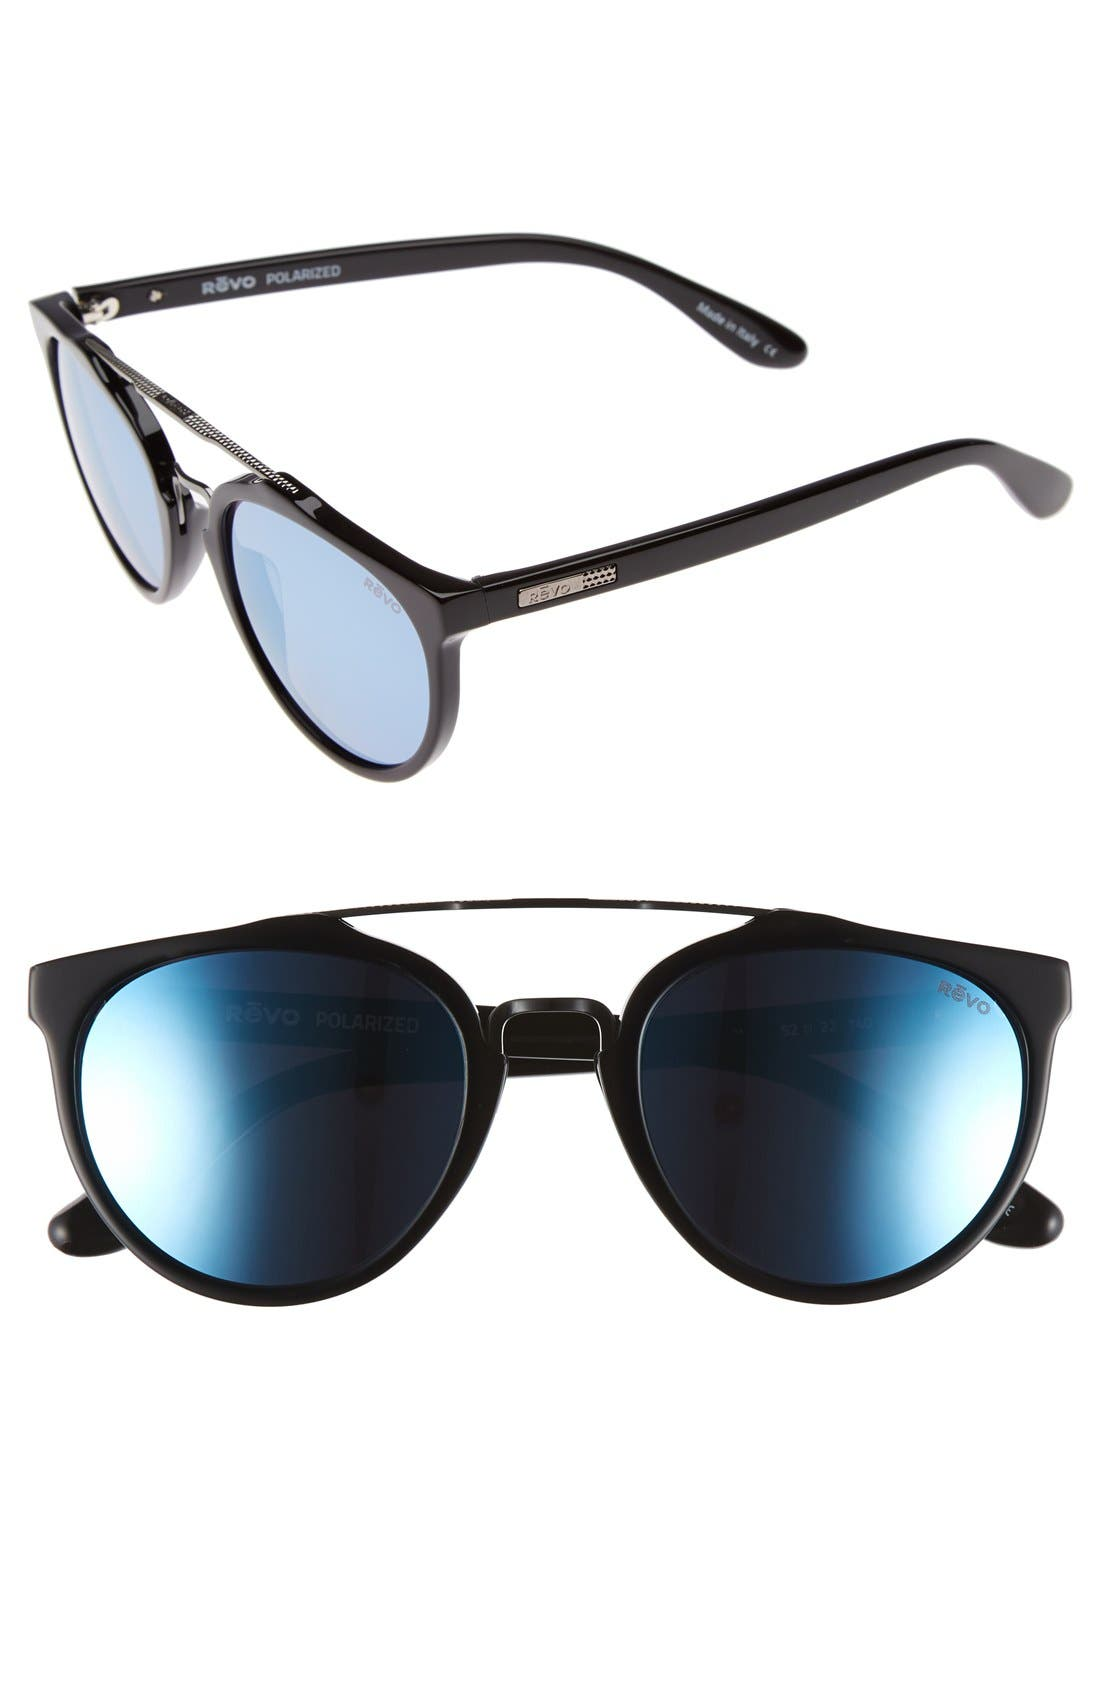 REVO Kingston 52mm Polarized Sunglasses